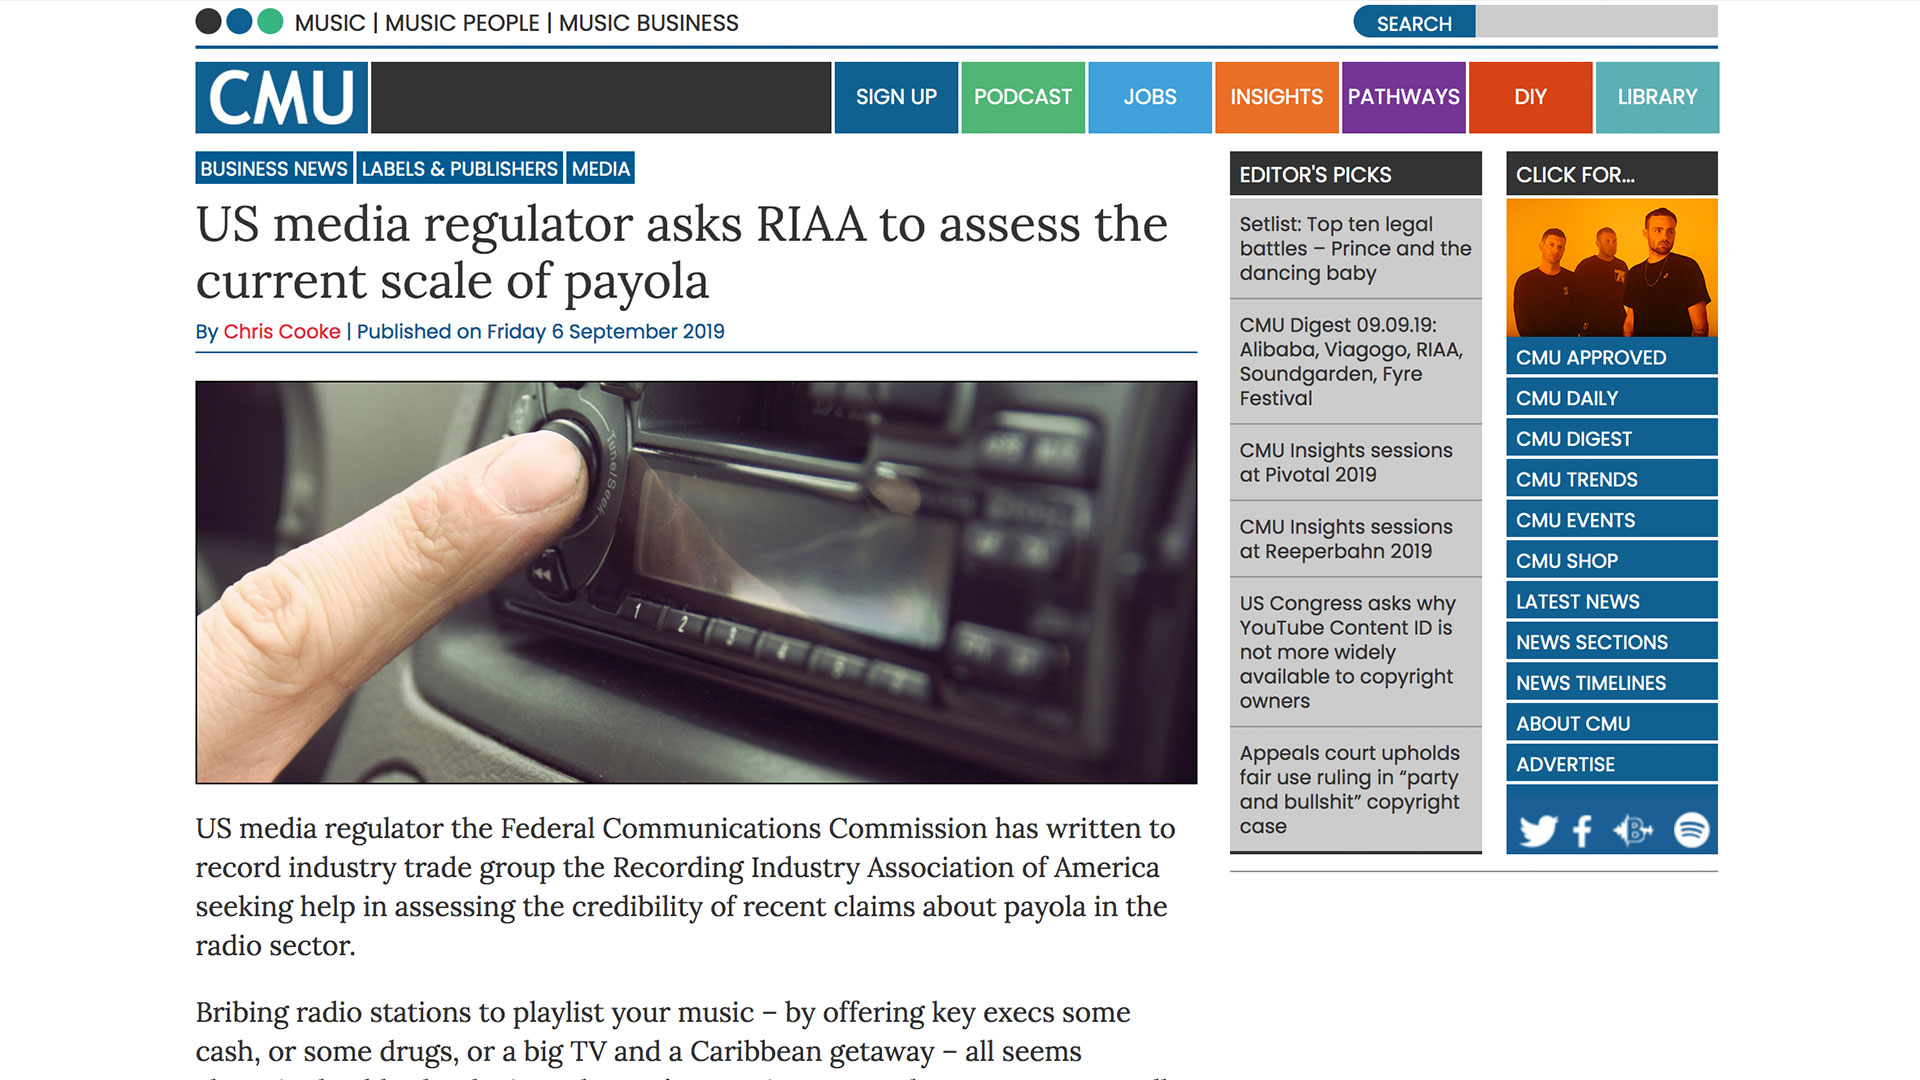 Fairness Rocks News US media regulator asks RIAA to assess the current scale of payola